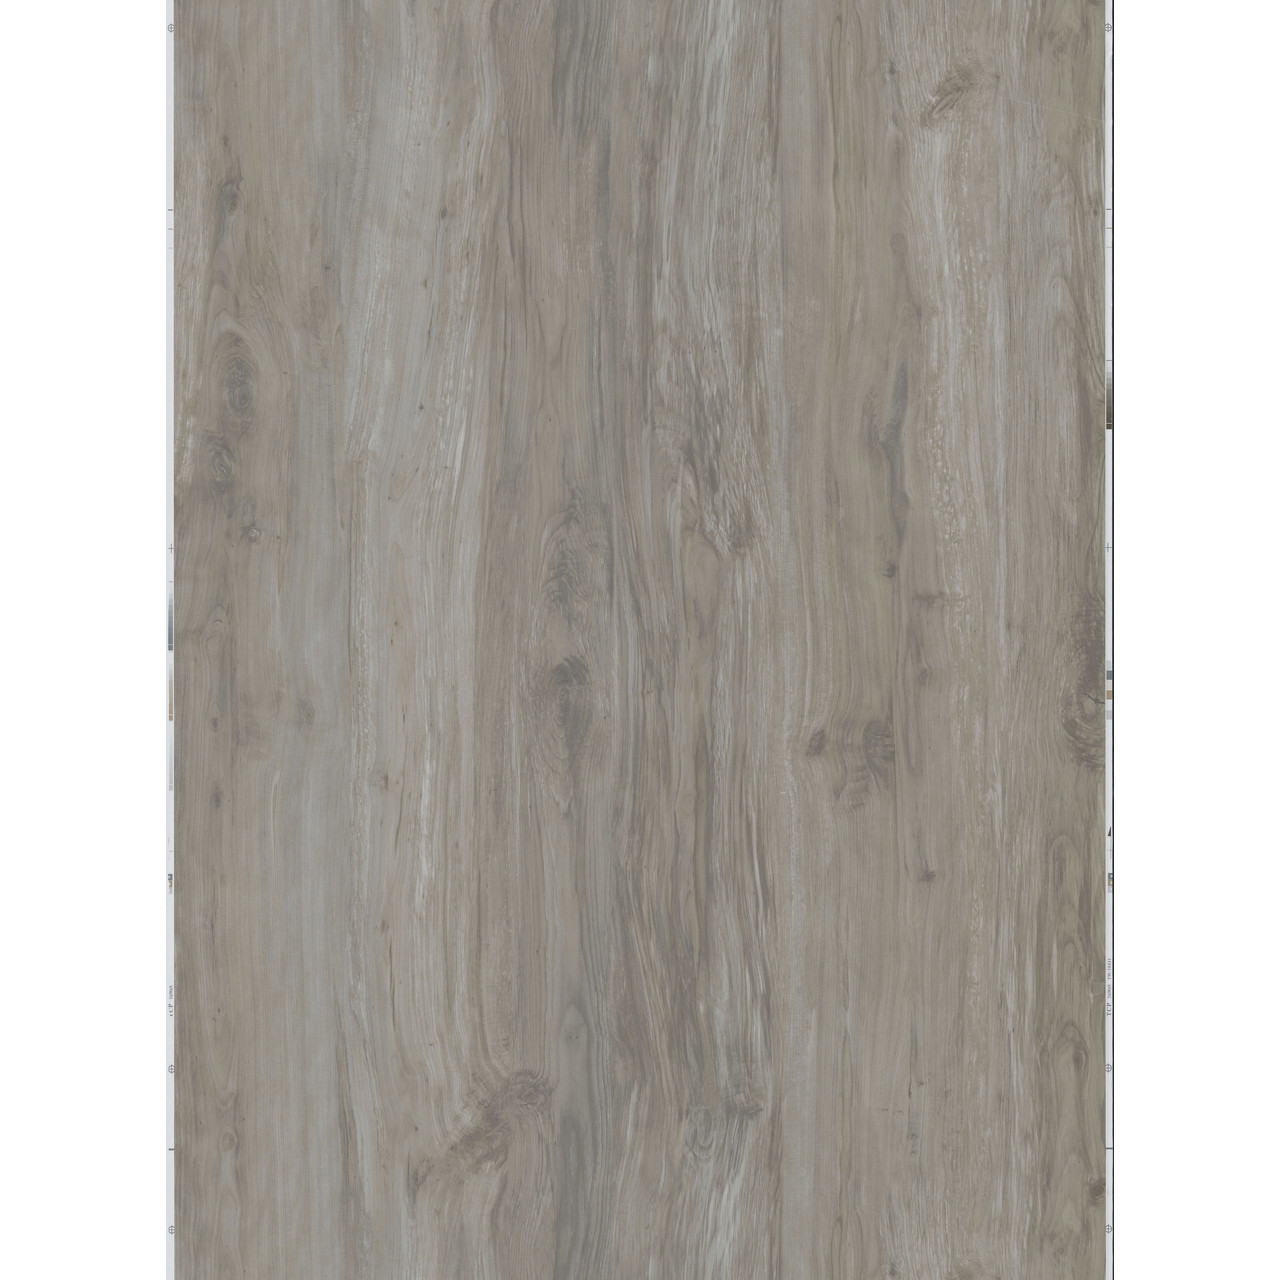 Multipanel Click Floor Coastal Grey Oak 1210mm x 190mm Bathroom Floor Planks